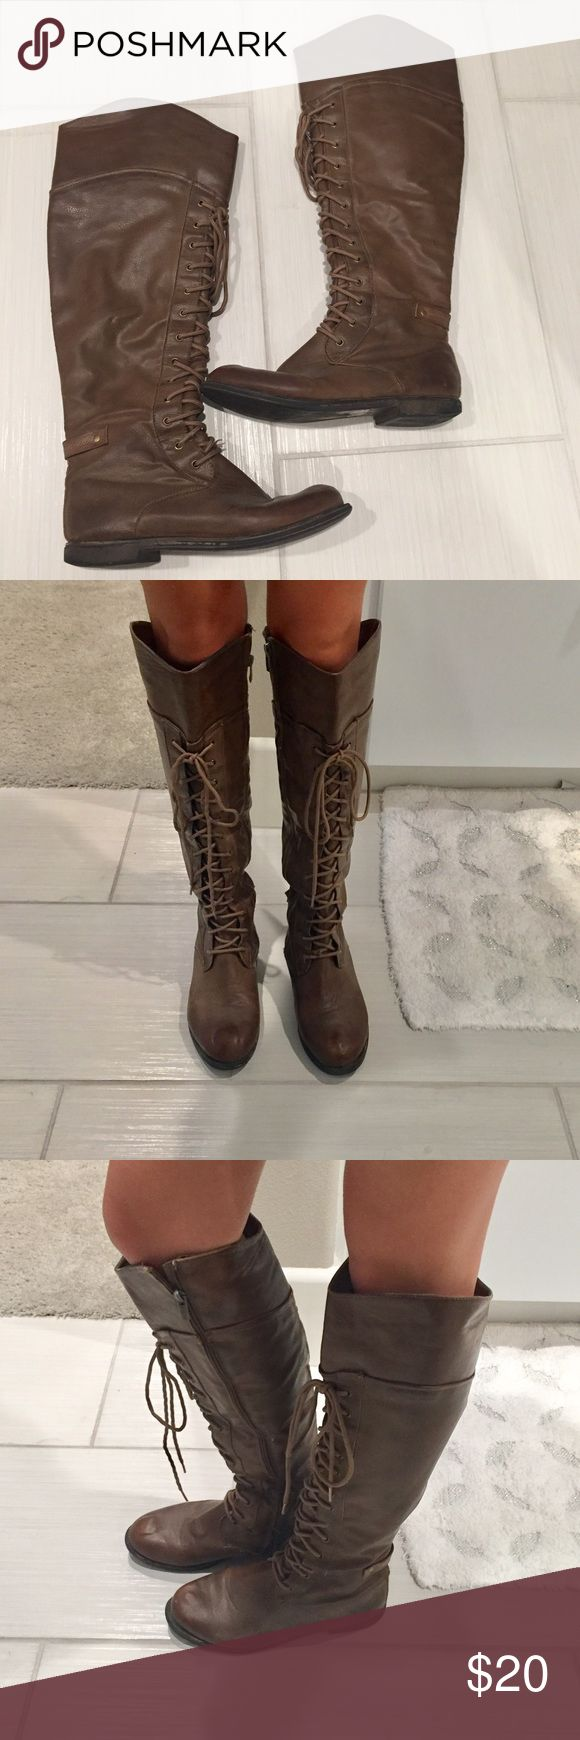 Tall lace up boots Tall lace up faux leather boots. Brown size 7. Used/good condition. Inside zipper and long laces. Soft inside lining. Similar but not exact to mode photo. De Blossom  Shoes Combat & Moto Boots